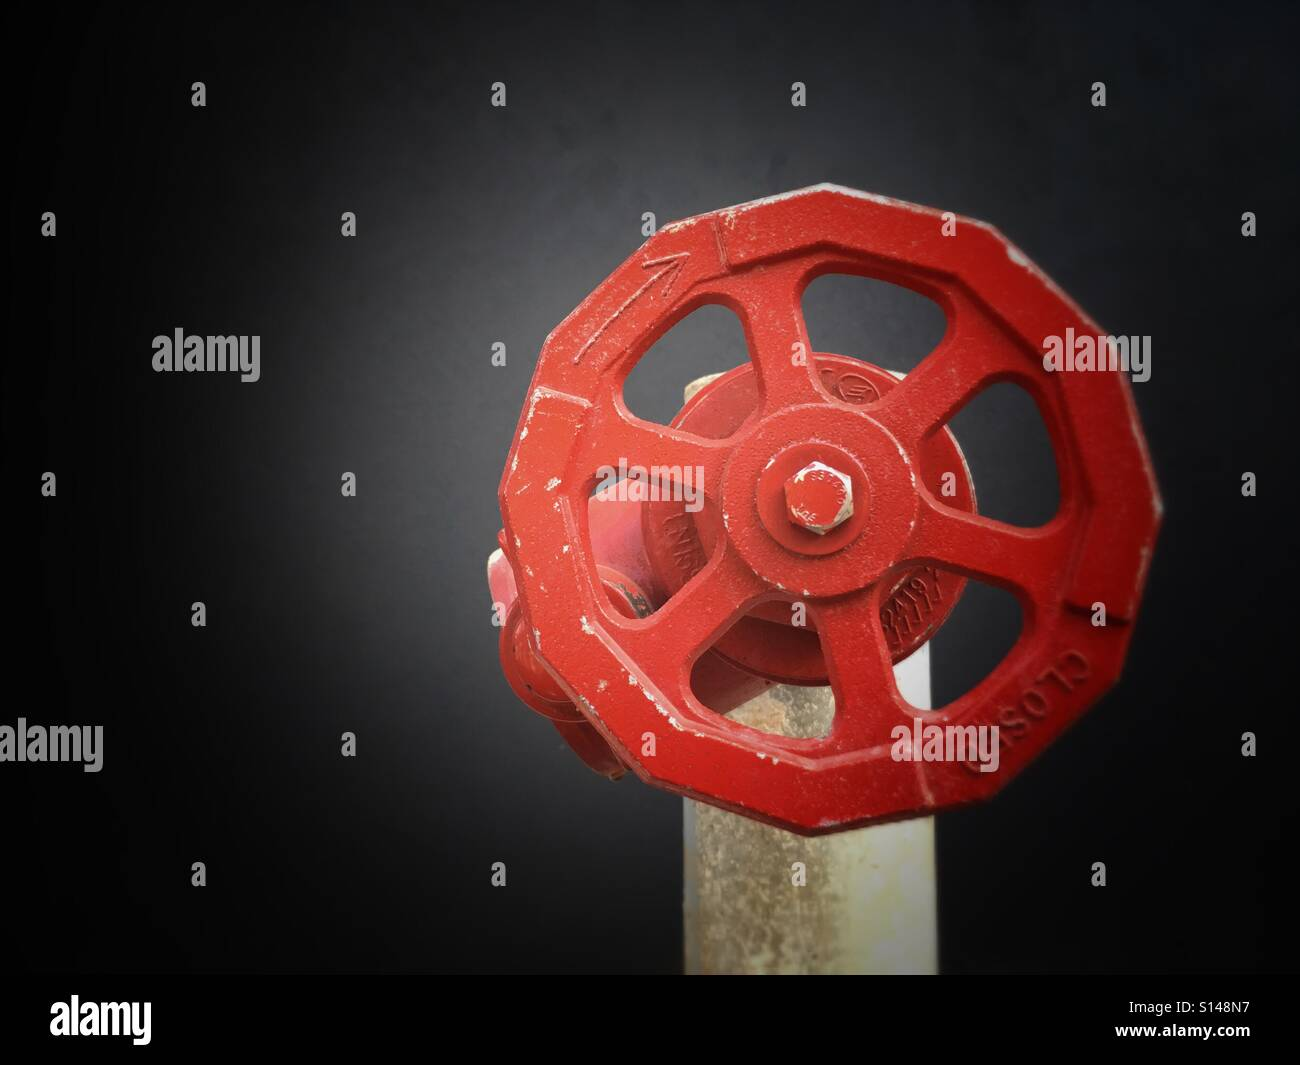 Fire safety equipment. - Stock Image